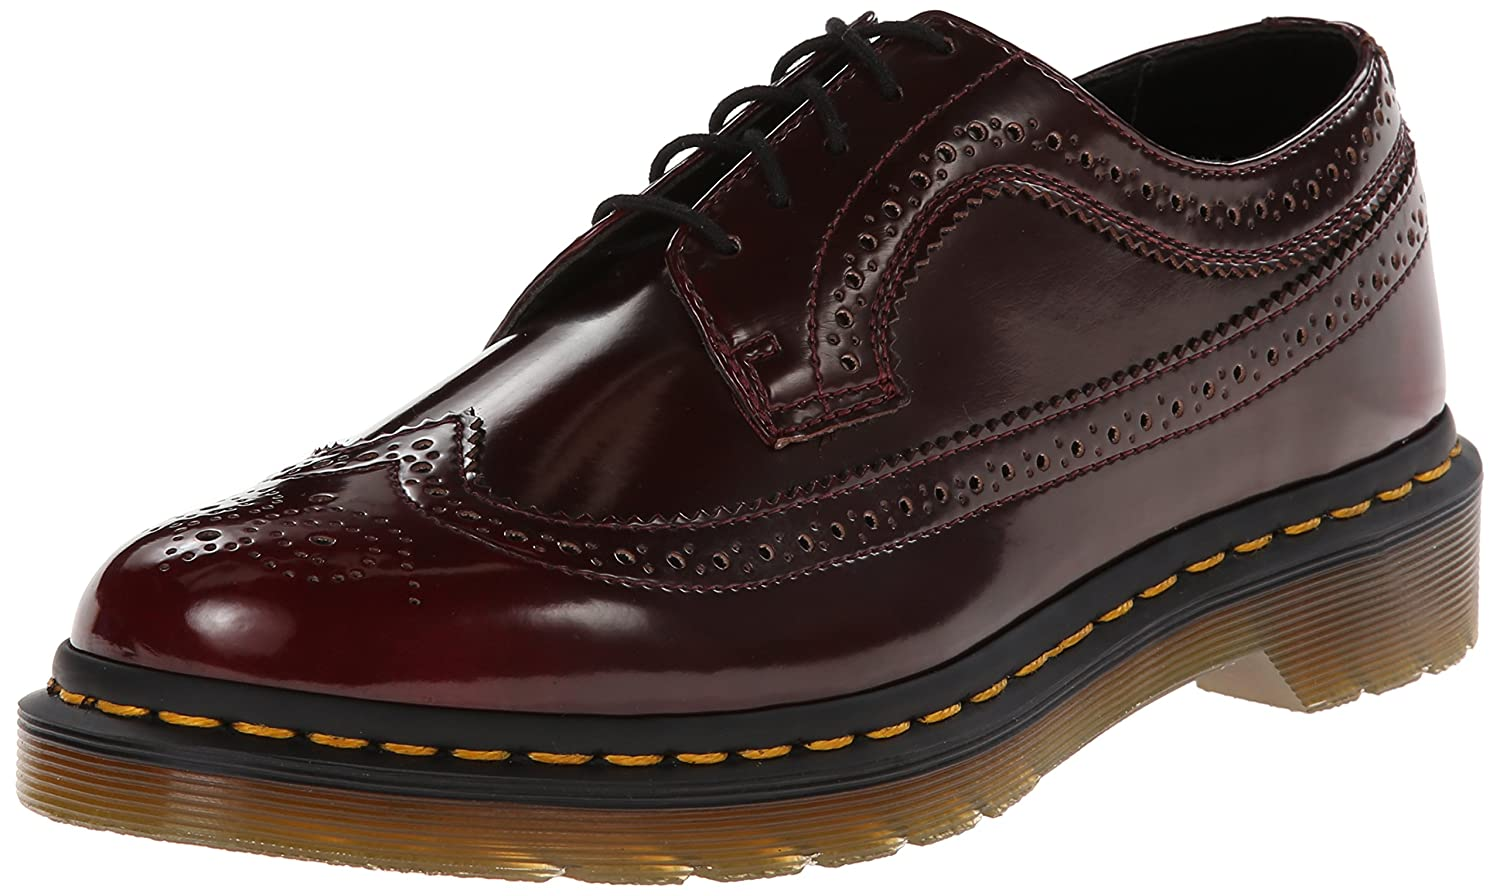 Dr. Martens 3989 Vegan C, Scarpe Stringate Basse Brogue Unisex – AdultoRosso (Cherry Red)